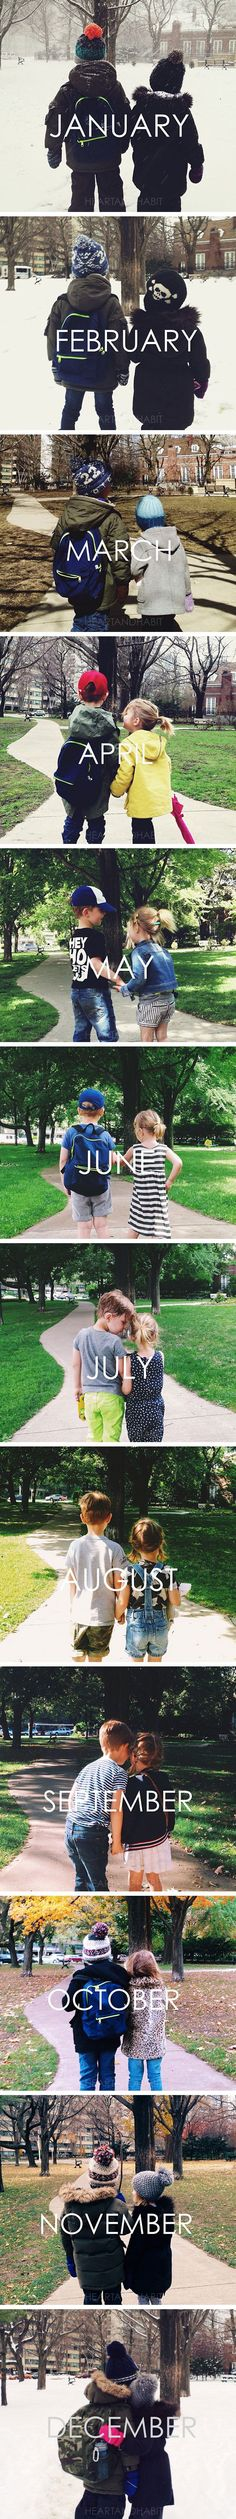 Take a picture in the same spot every month and then make a calendar out of it! Has to be one of the cutest things Ive ever seen!